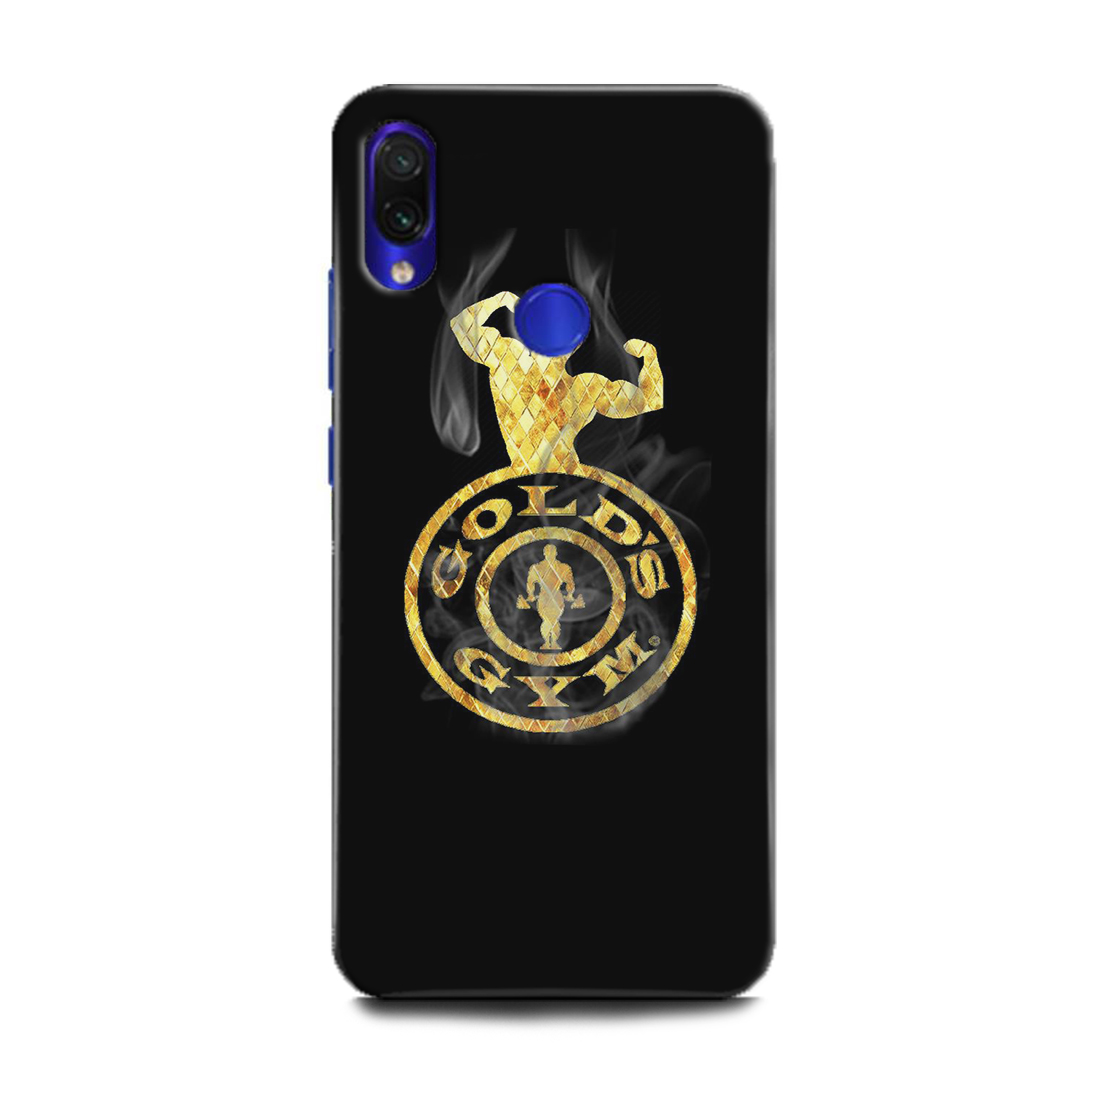 INDICRAFT Mobile Back Cover For Mi Redmi Note 7 Pro / Hard Case (GYM, Gold's Gym, Body Fit gym, Fitness, GYM Workout, Sports, MZB7464IN) (AB-Note7Pro-0196)